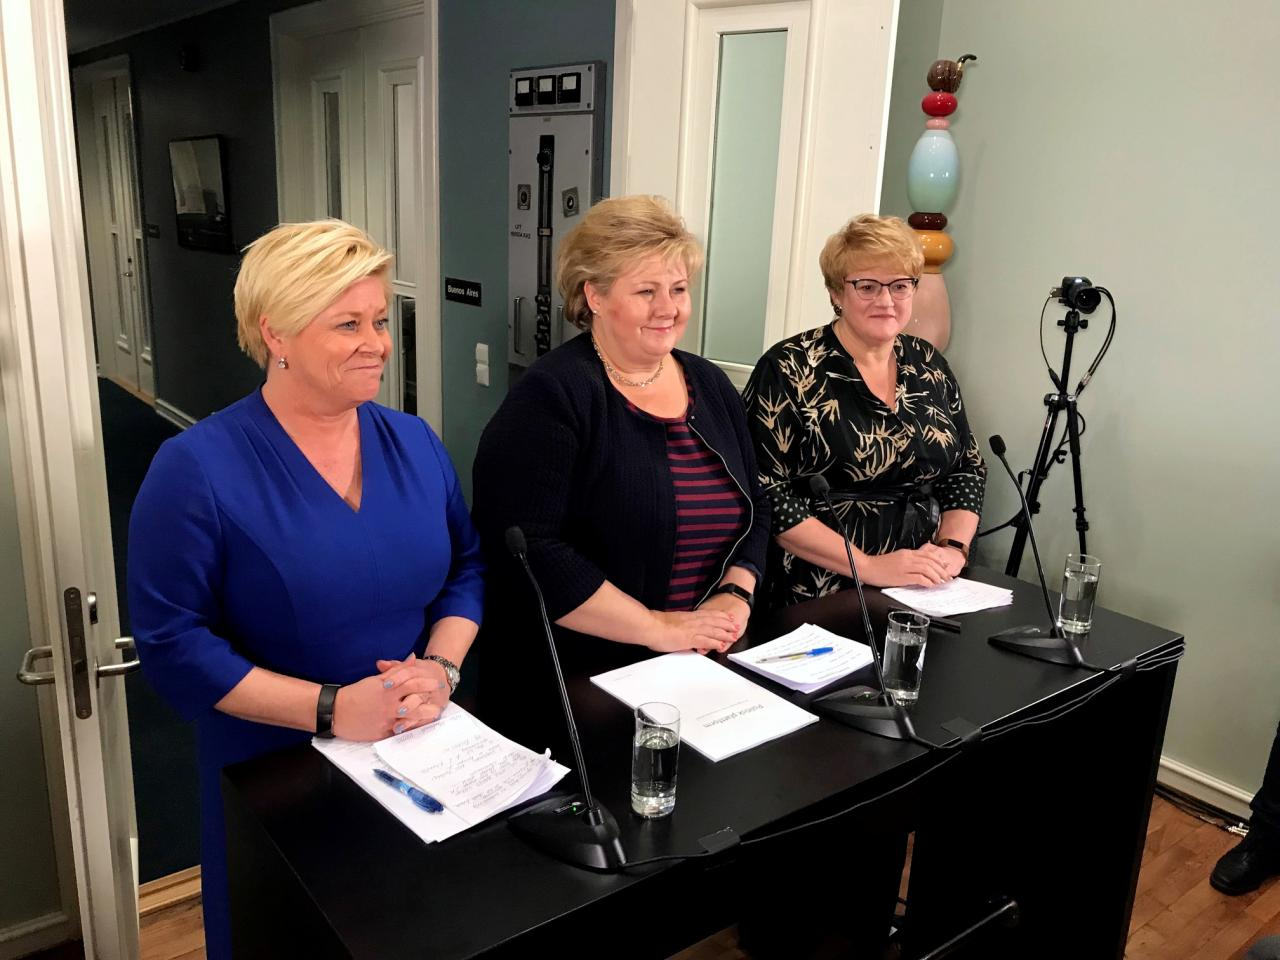 Erna Solberg, Norwegian Prime Minister of the Conservative Party (C), Siv Jensen, Finance Minister of the Progress Party (L) and Trine Skei Grande, Liberal Party leader announce an expansion of the government in Moss, Norway, January 14, 2018. REUTERS/Joachim Dagenborg